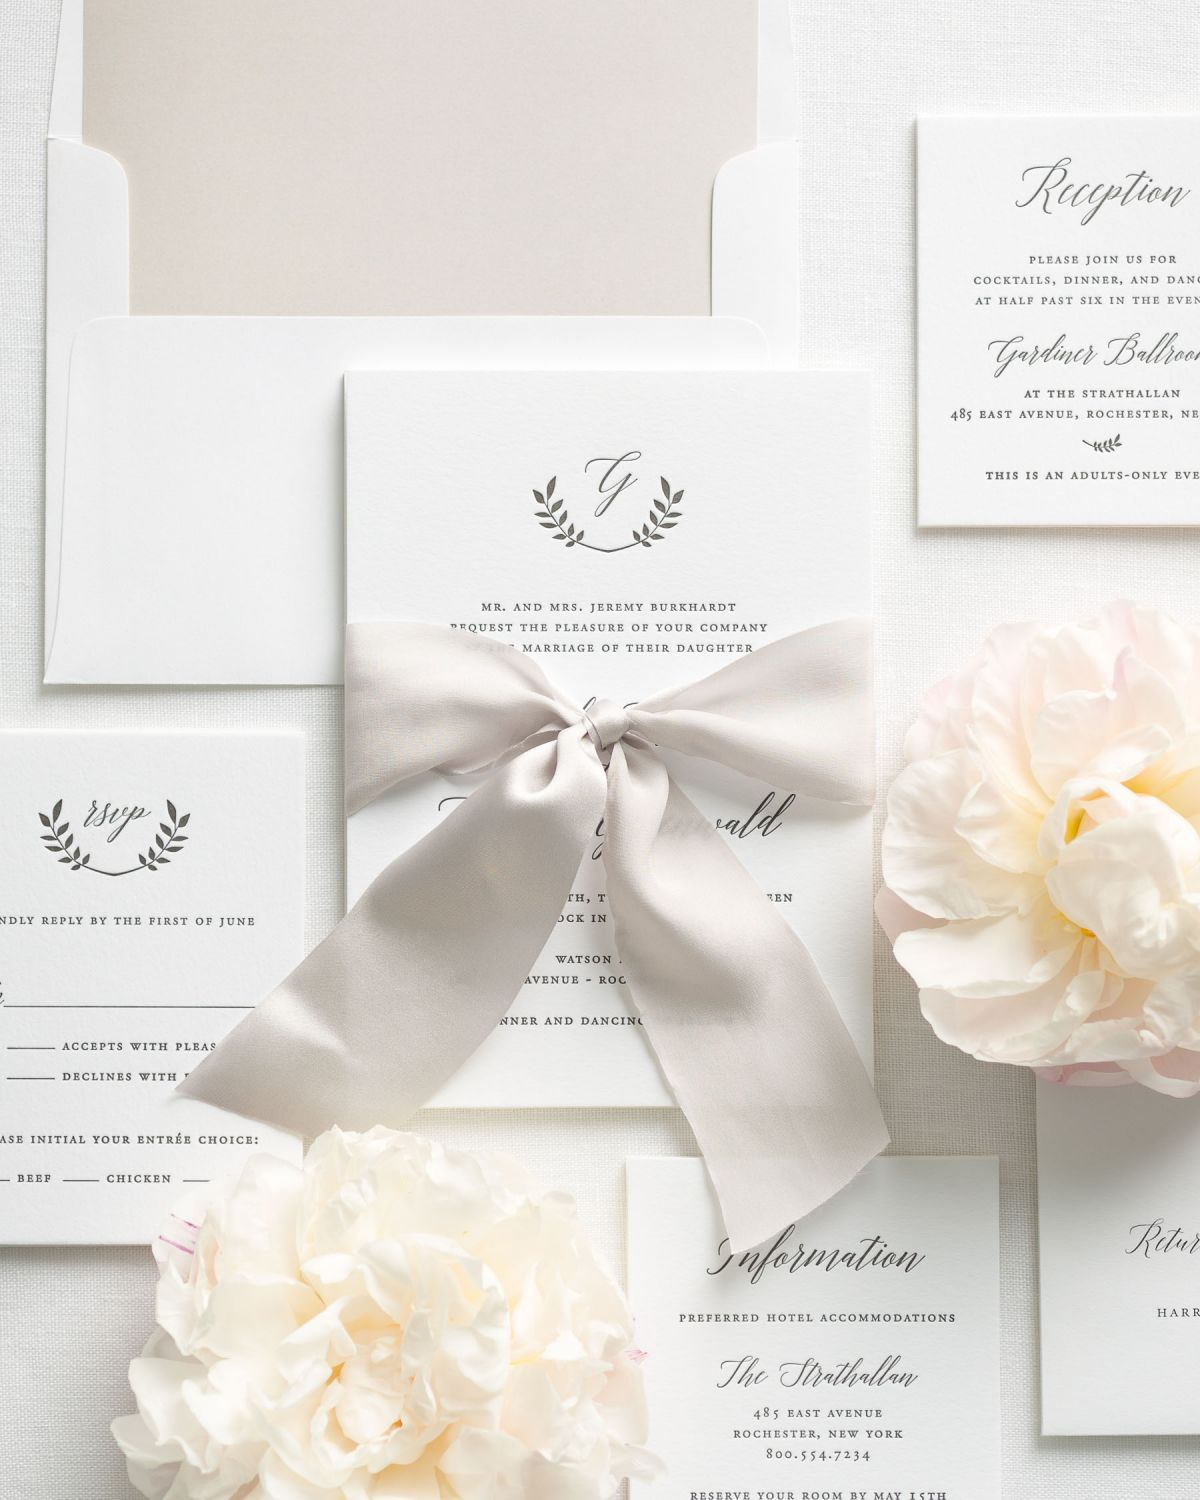 Wreath Wedding Invitations with Silk Ribbon and Letterpress Printing